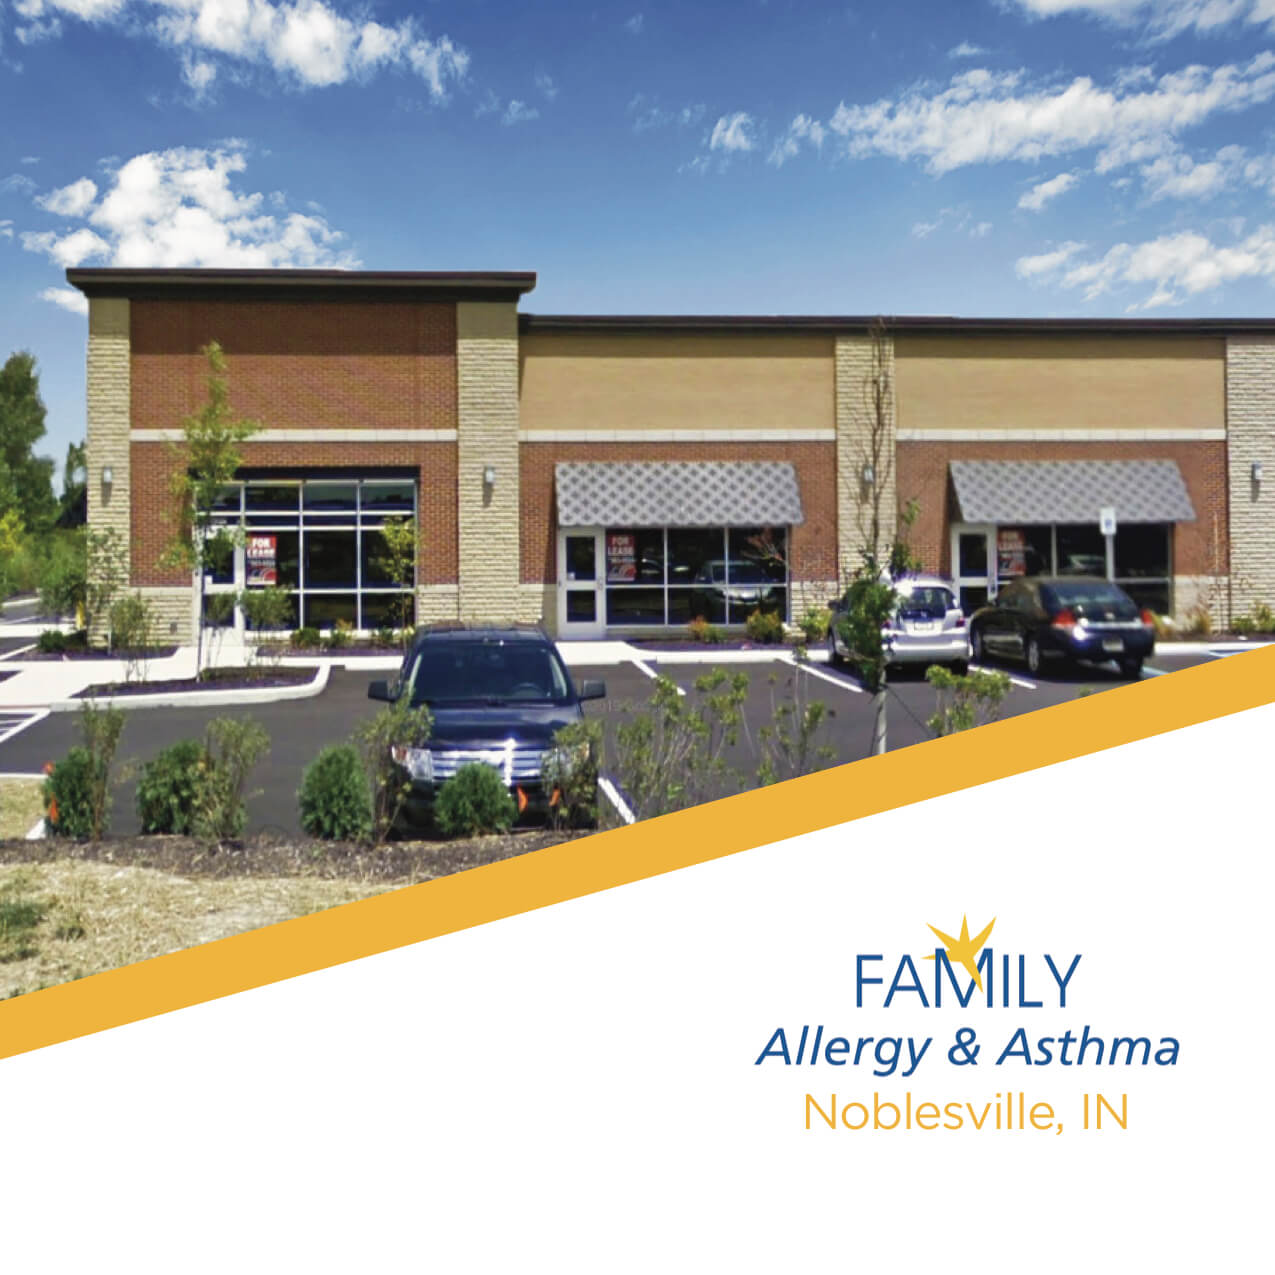 Family Allergy and Asthma Noblesville